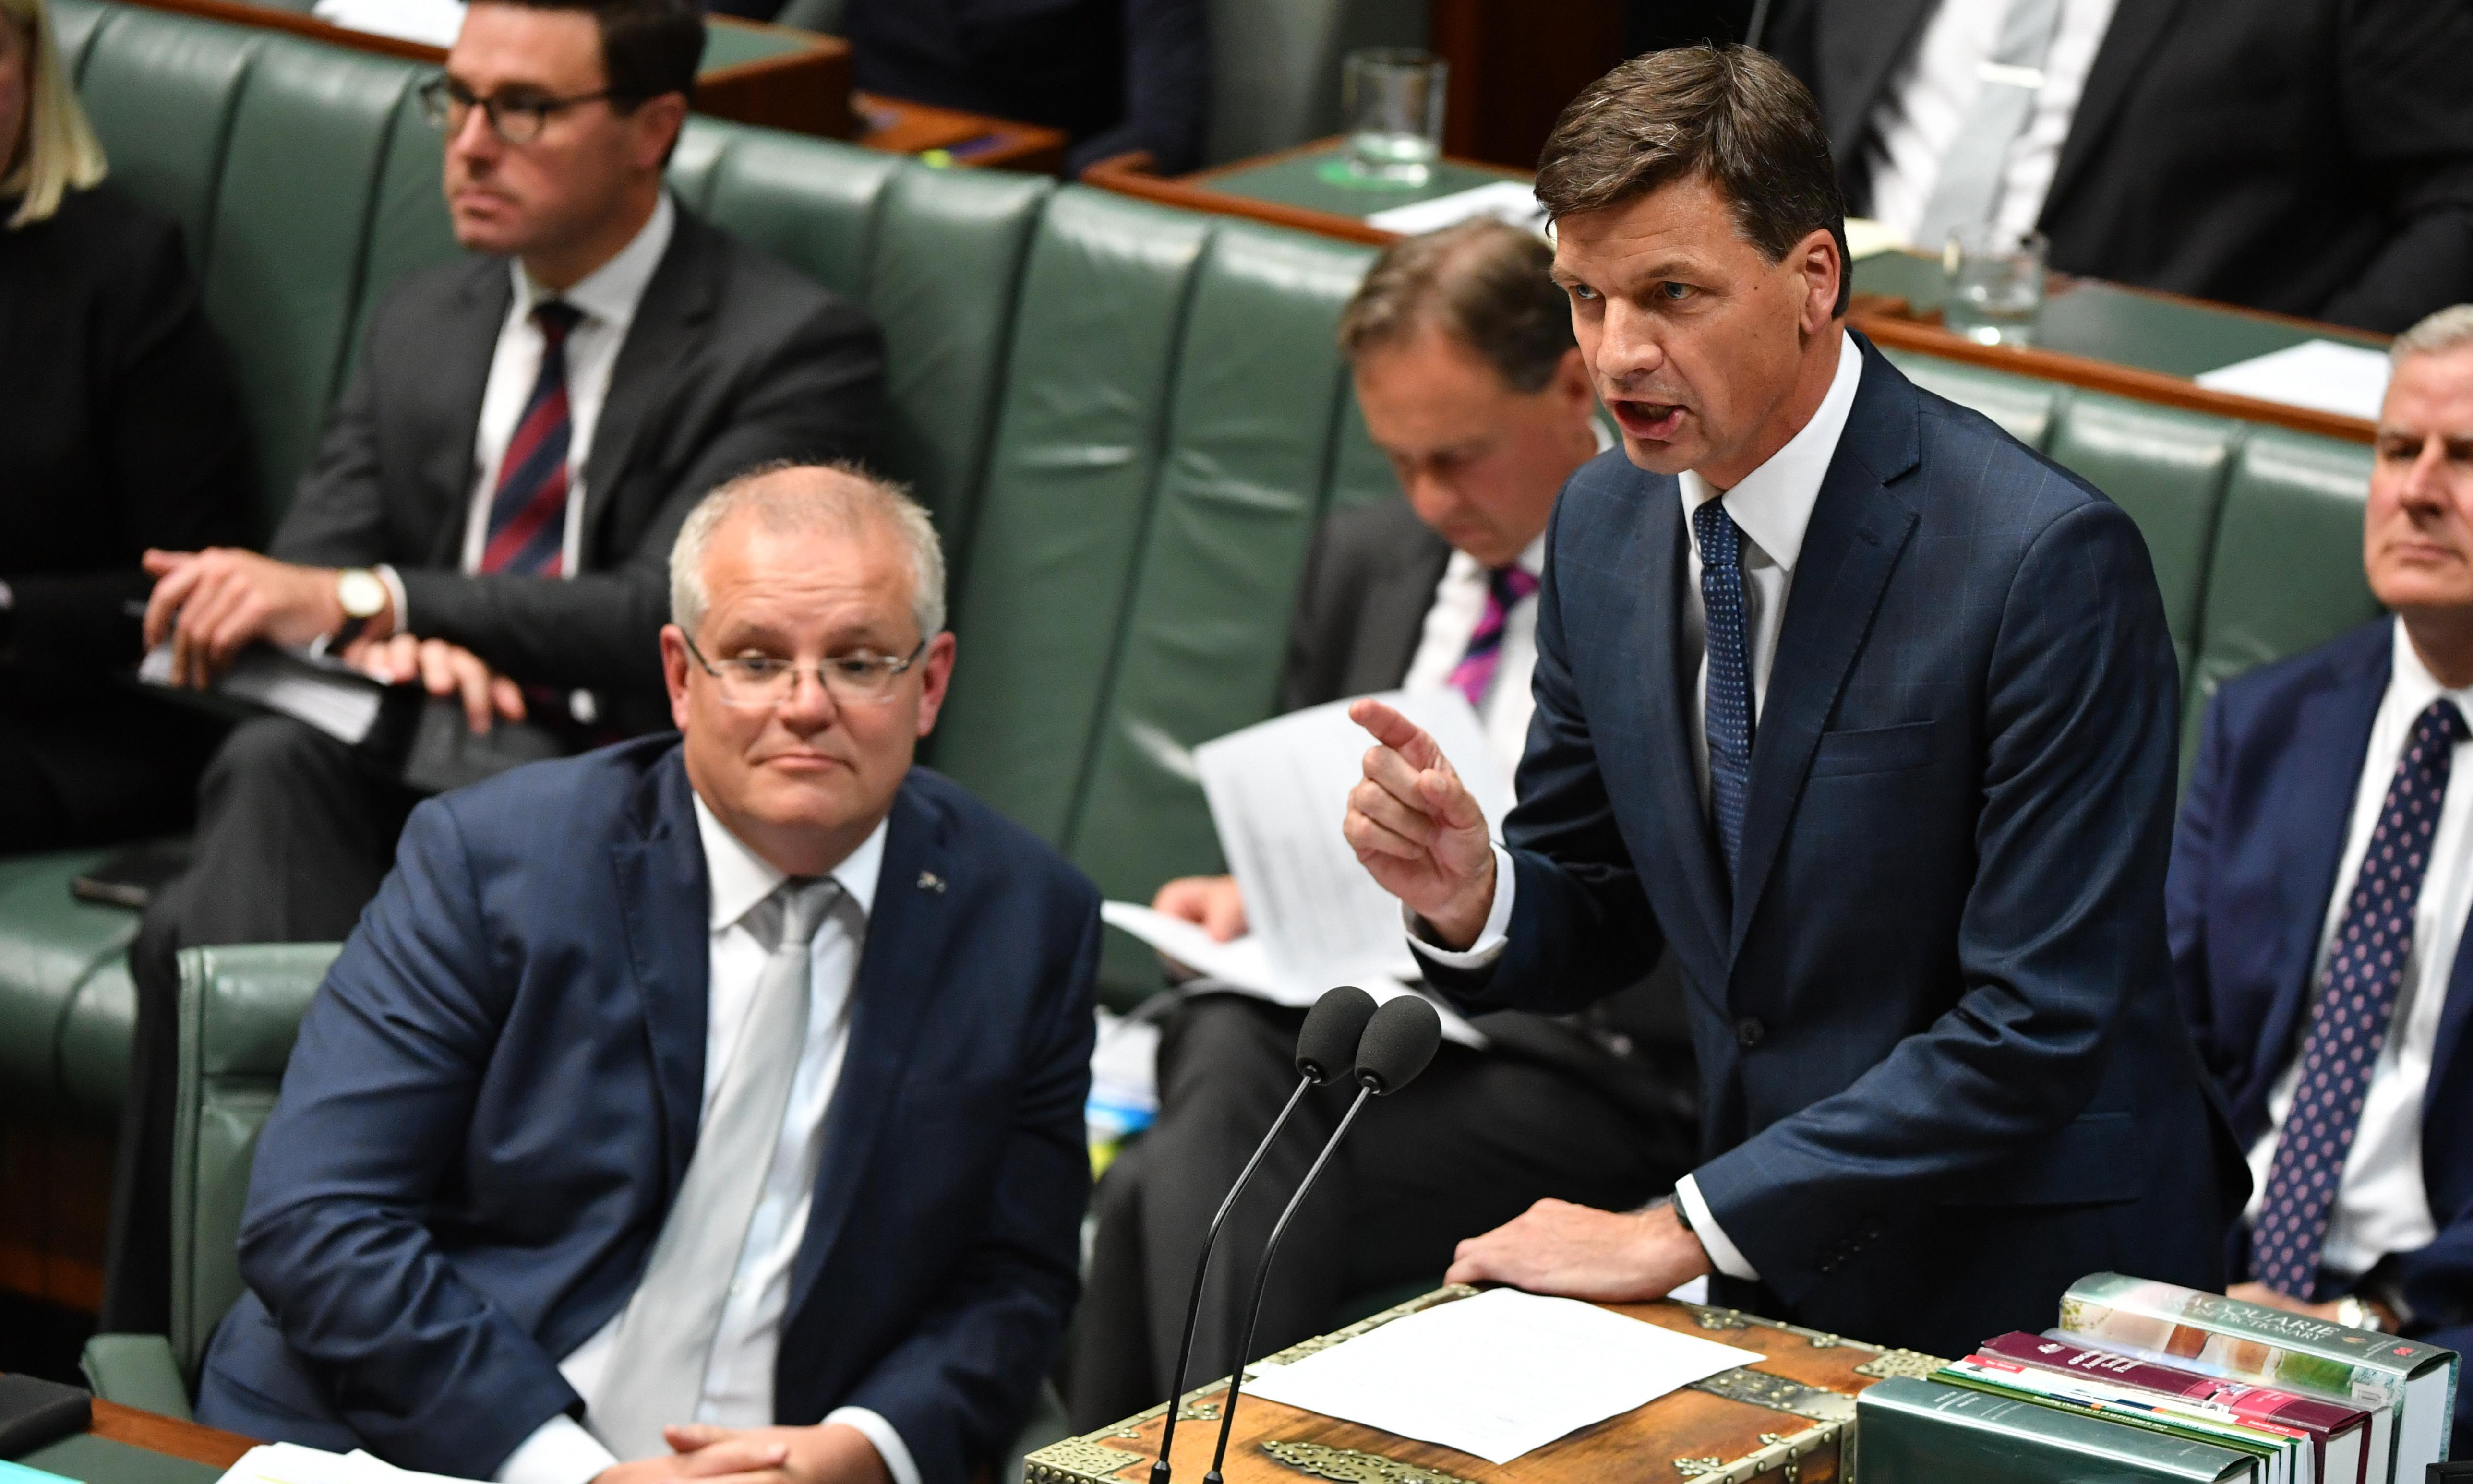 Angus Taylor says he has 'point of contact' with police but stays silent on metadata